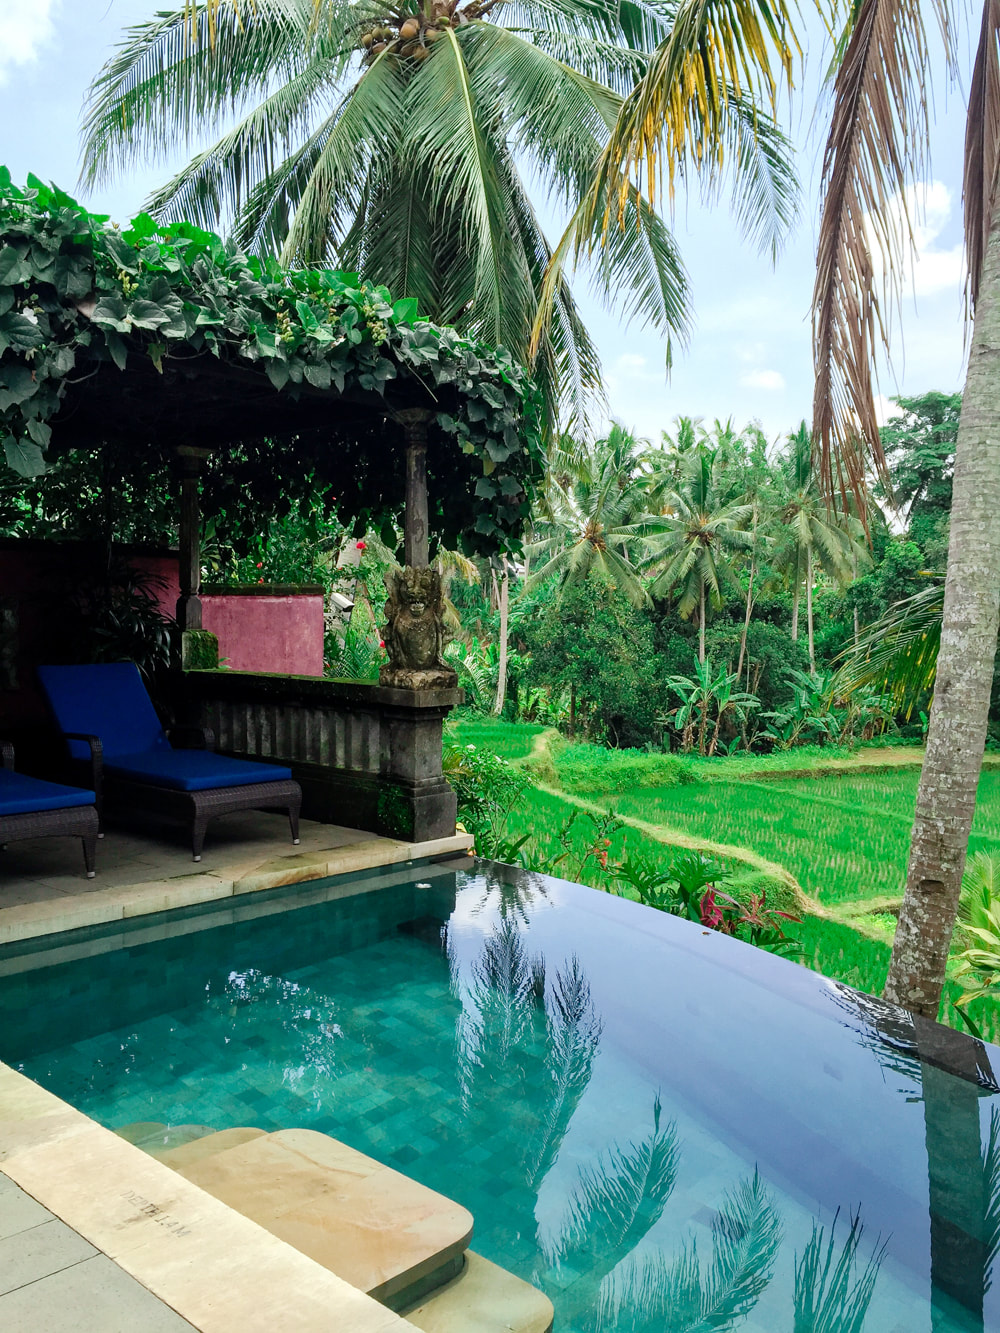 Private pool and seating area, over-looking the rice paddy field. Dwaraka, the Royal Villas, Ubud, Bali, Indonesia.